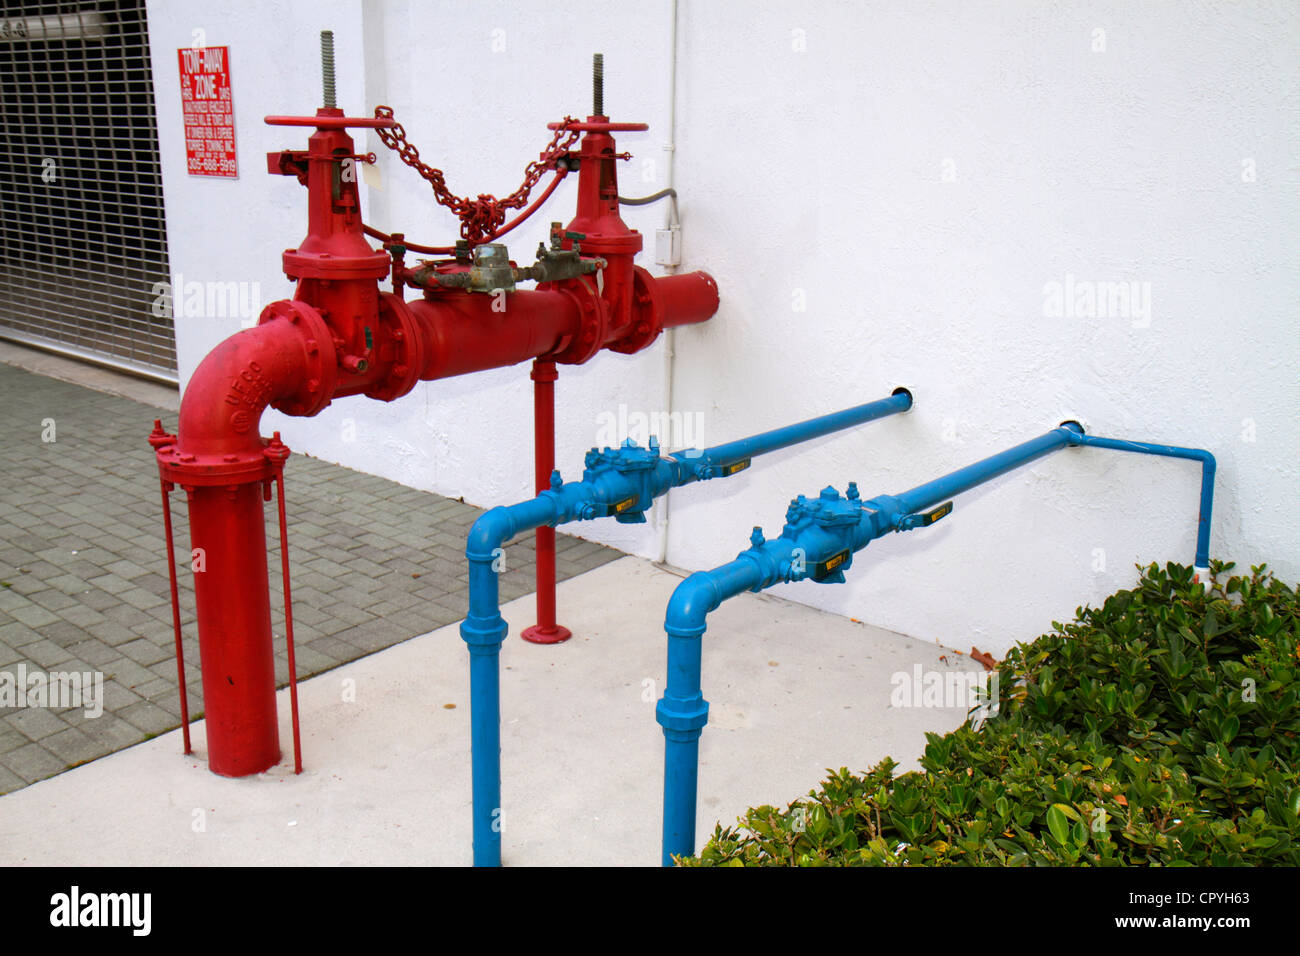 Miami Coral Gables Miami Florida water pipes gas plumbing exposed commercial building Stock Photo